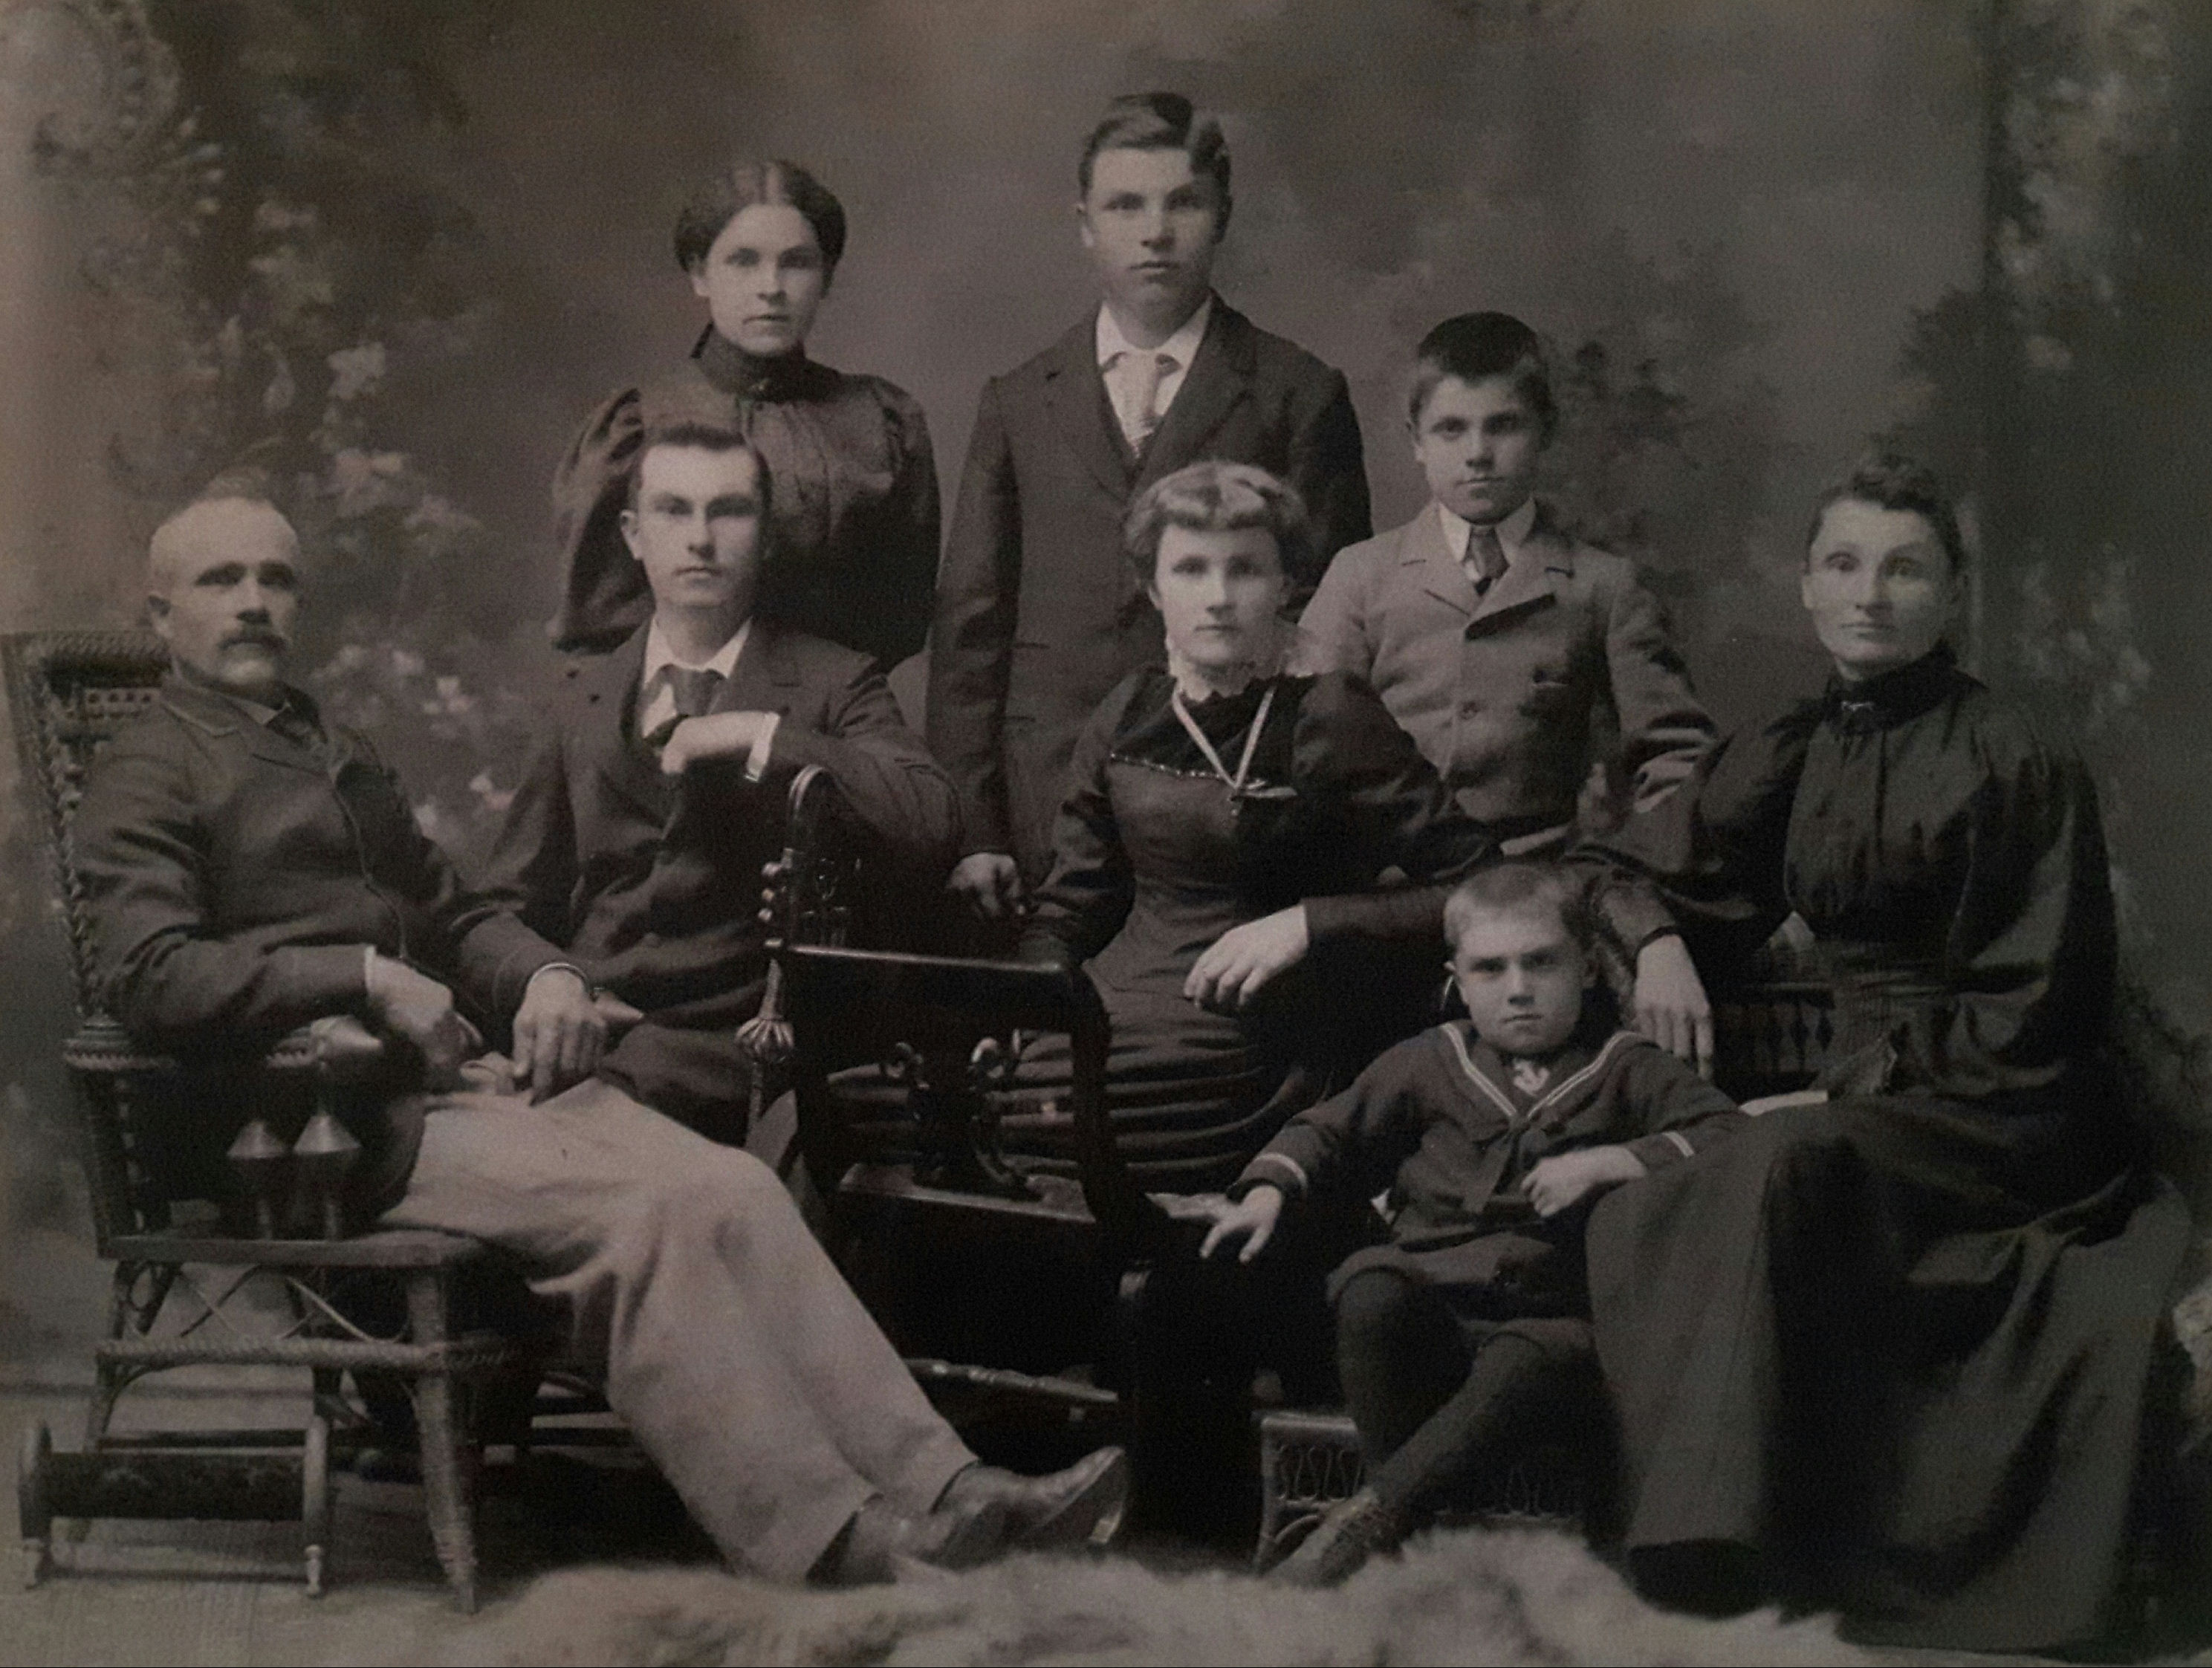 Family Photo– The Brown family portrait from Clinton, Ontario    Standing; Elizabeth Abel Brown   1883 - 1957 Charles Wesley Brown 1881 - 1920 Ernest Edgar Brown  1887 - 1946   Sitting; Father - John brown  1851 -  Frances George Brown  1878 - 1930 Martha Grace (Minnie) Brown  1875 - 1961  * Sammuel Henry Brown *  1891 - 1917 Mother - Mary Ann Pennebaker  1856 - 1914